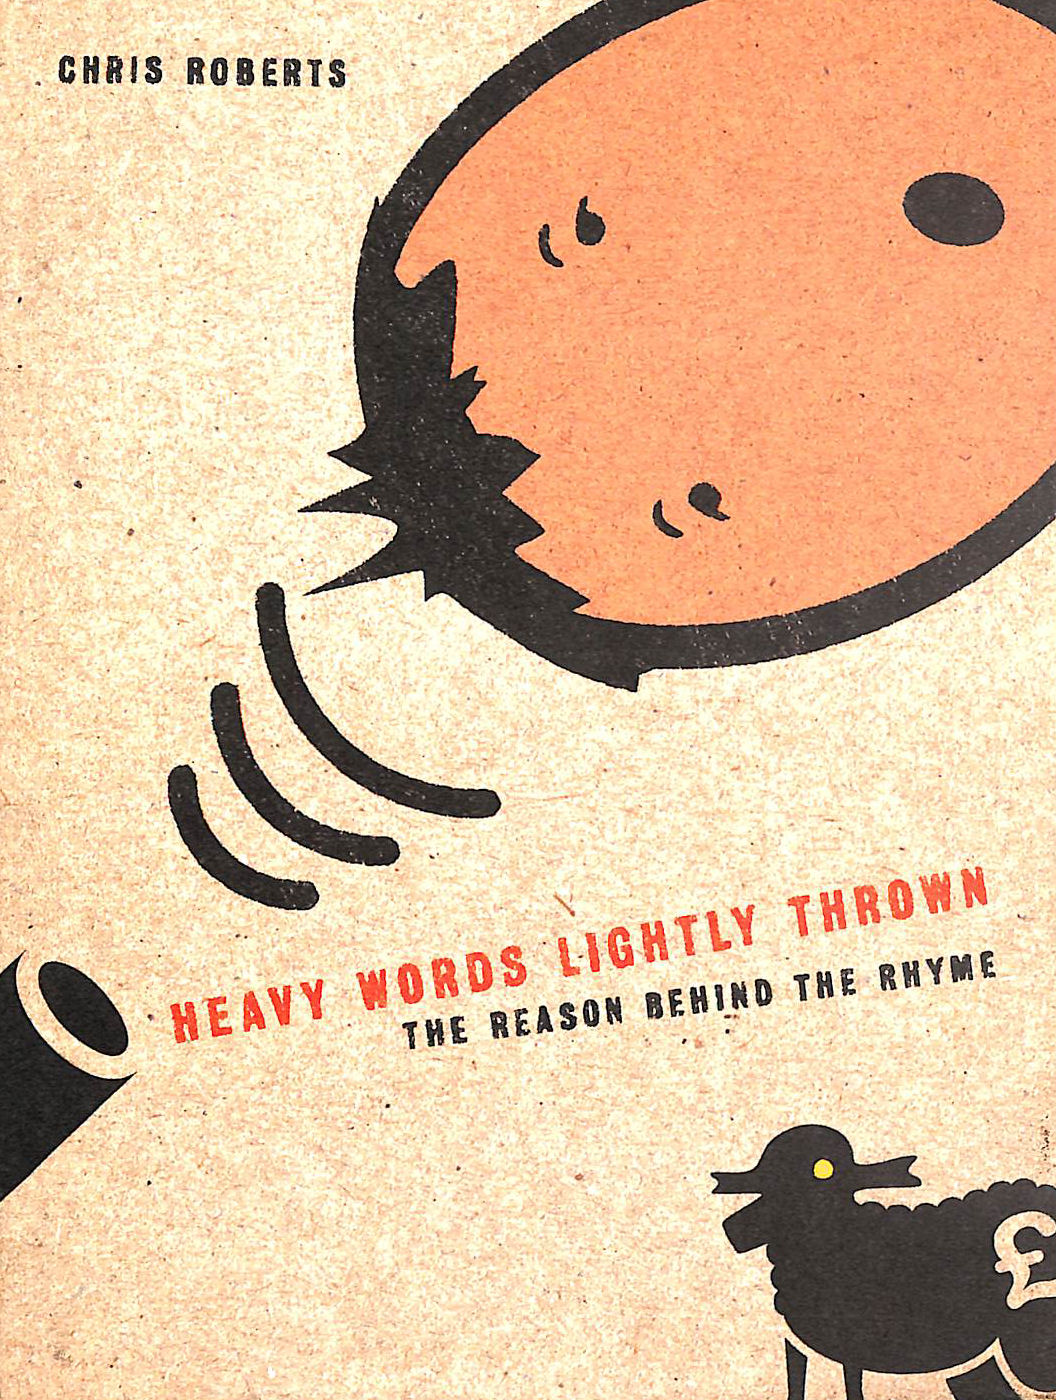 Image for Heavy Words Lightly Thrown: The Reason Behind the Rhyme